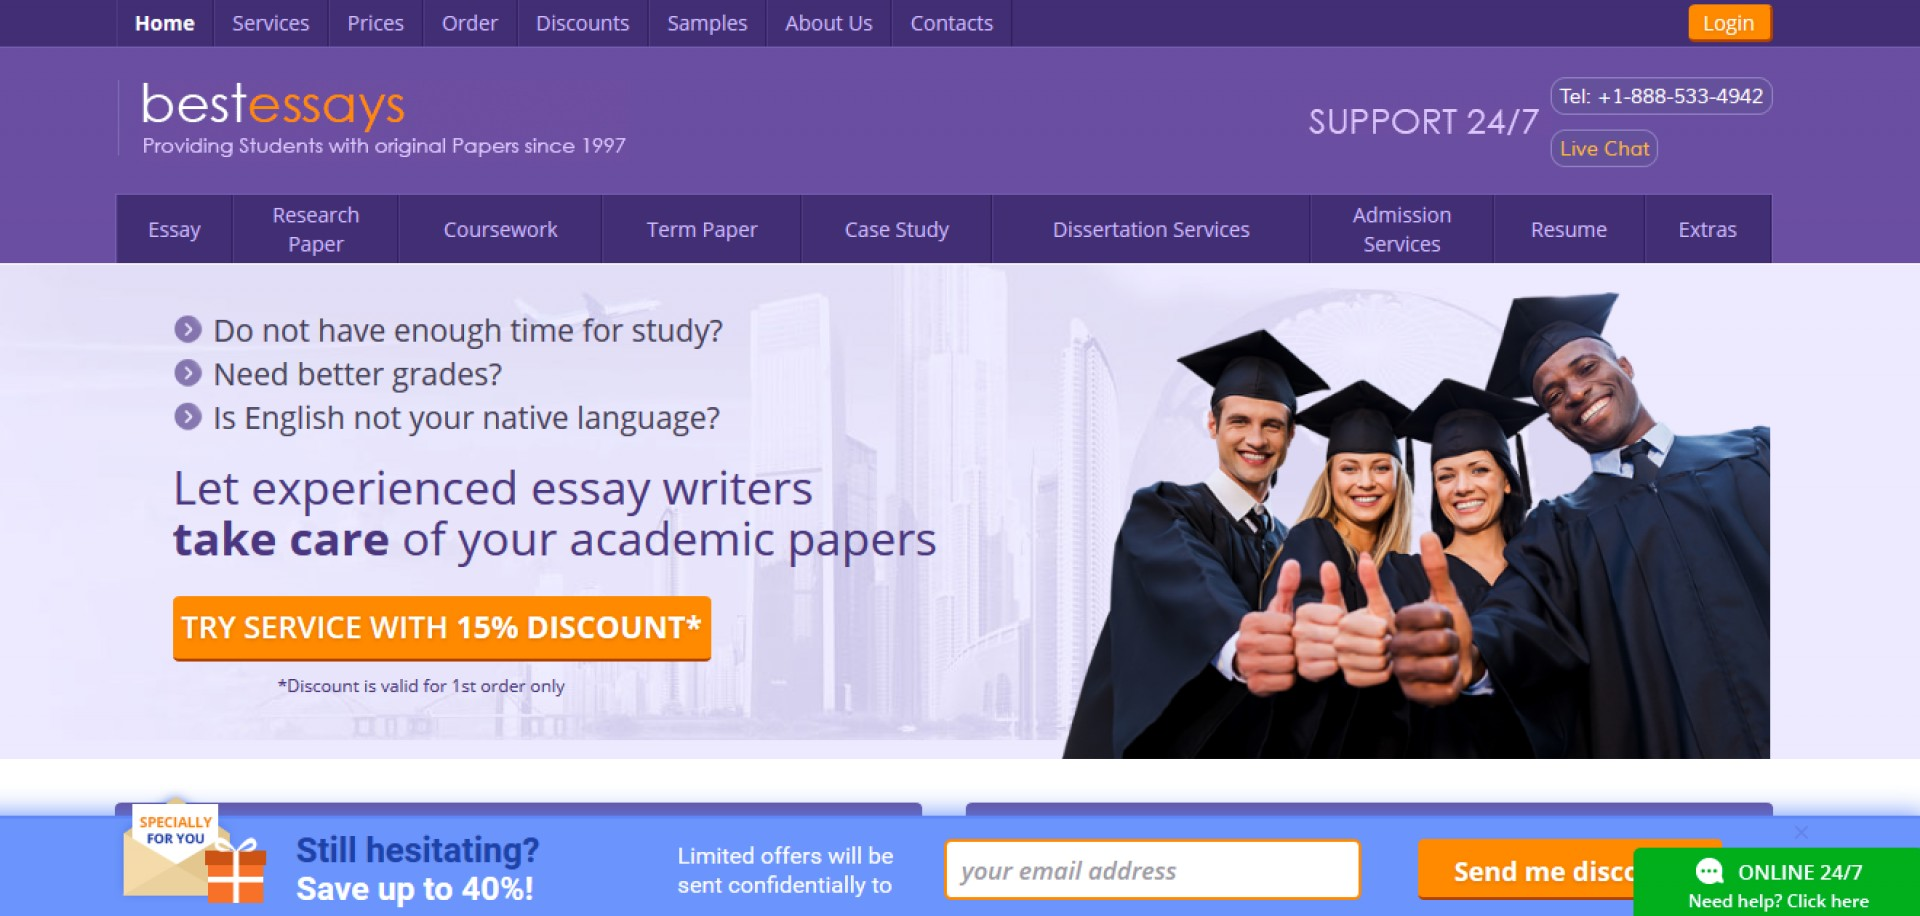 011 Professional Custom Essay Writing Site Online Awesome Writers Uk Service Australia 1920